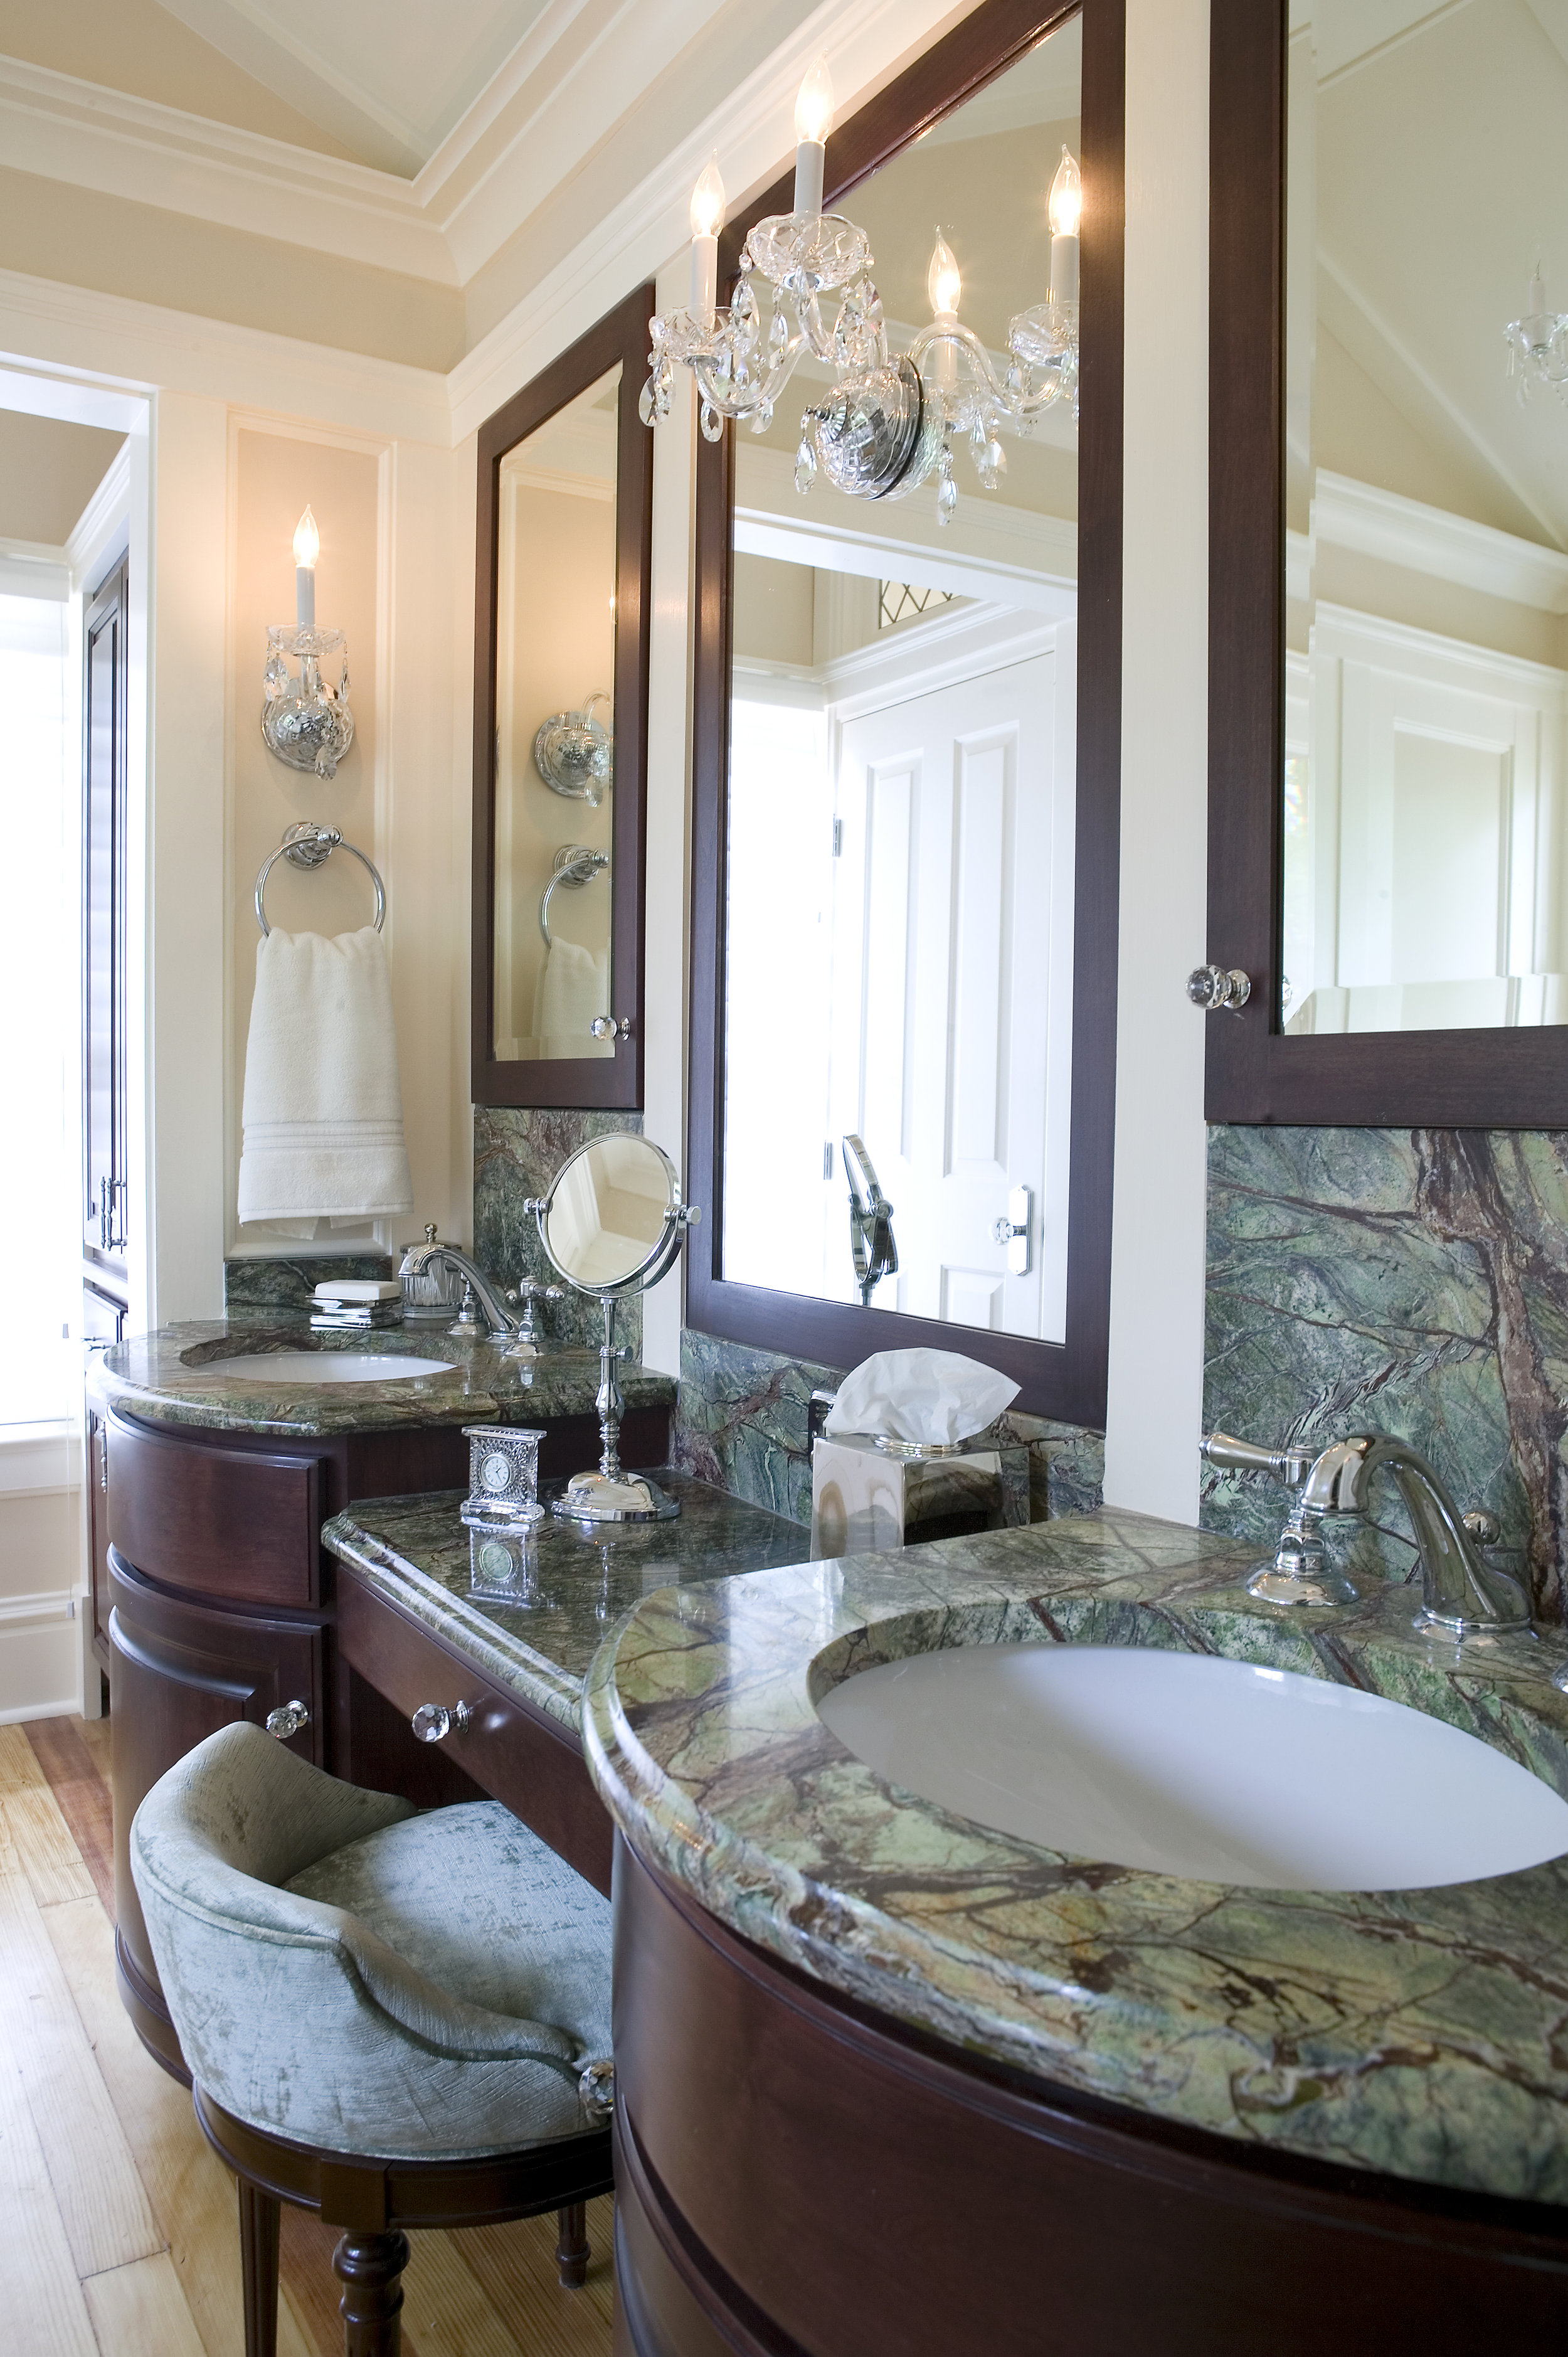 Bathroom interior designer Chicago 1210 GREENWOOD 010.jpg